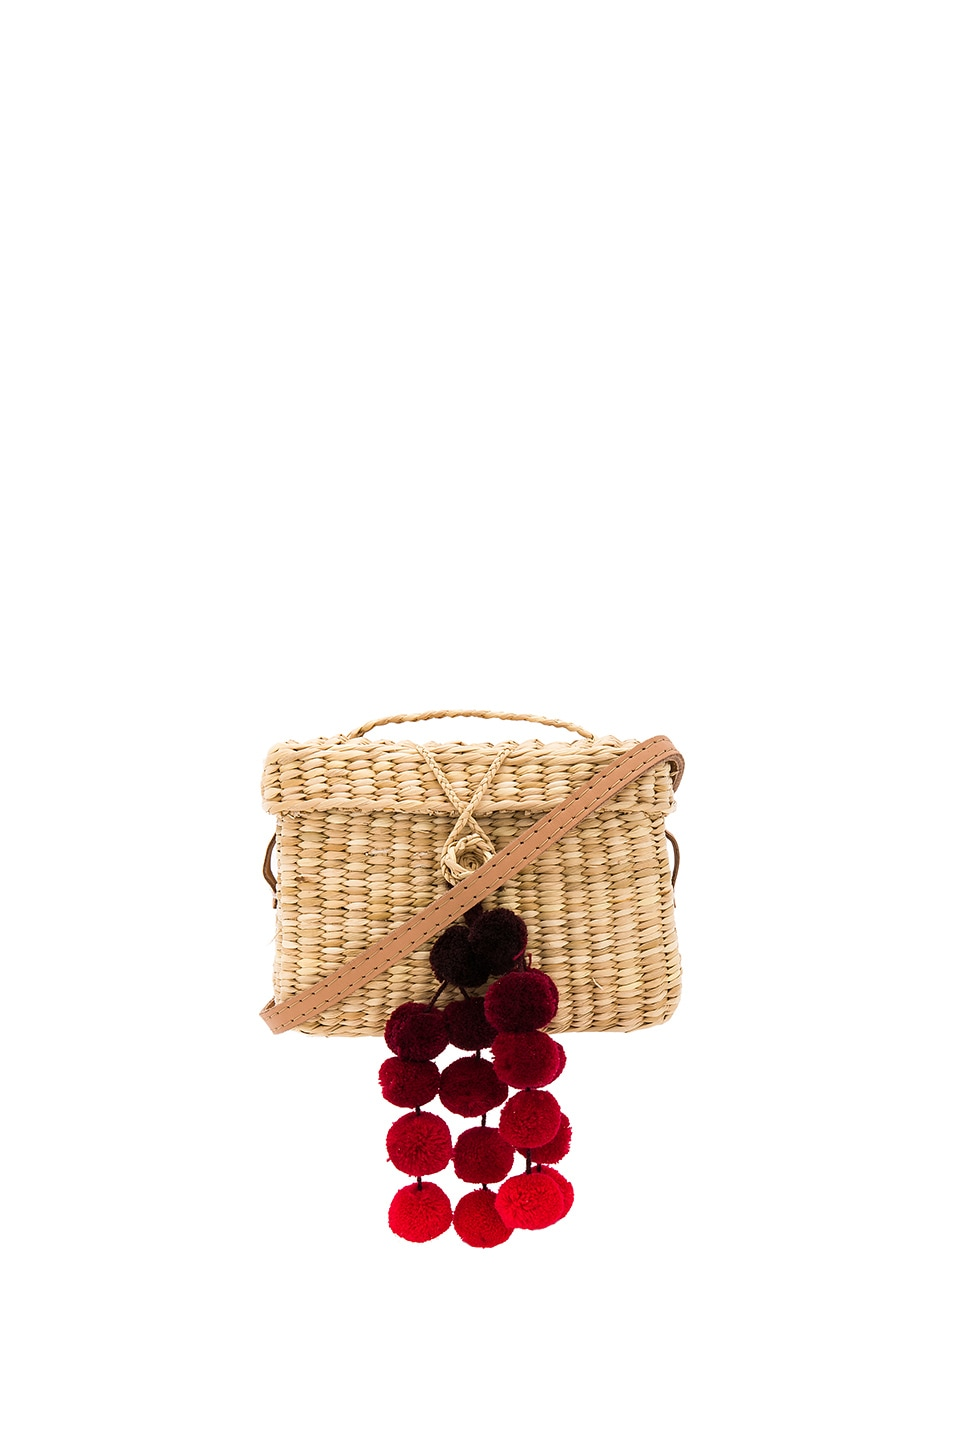 Nannacay Baby Roge Cascade Red Pompom Bag in Off White